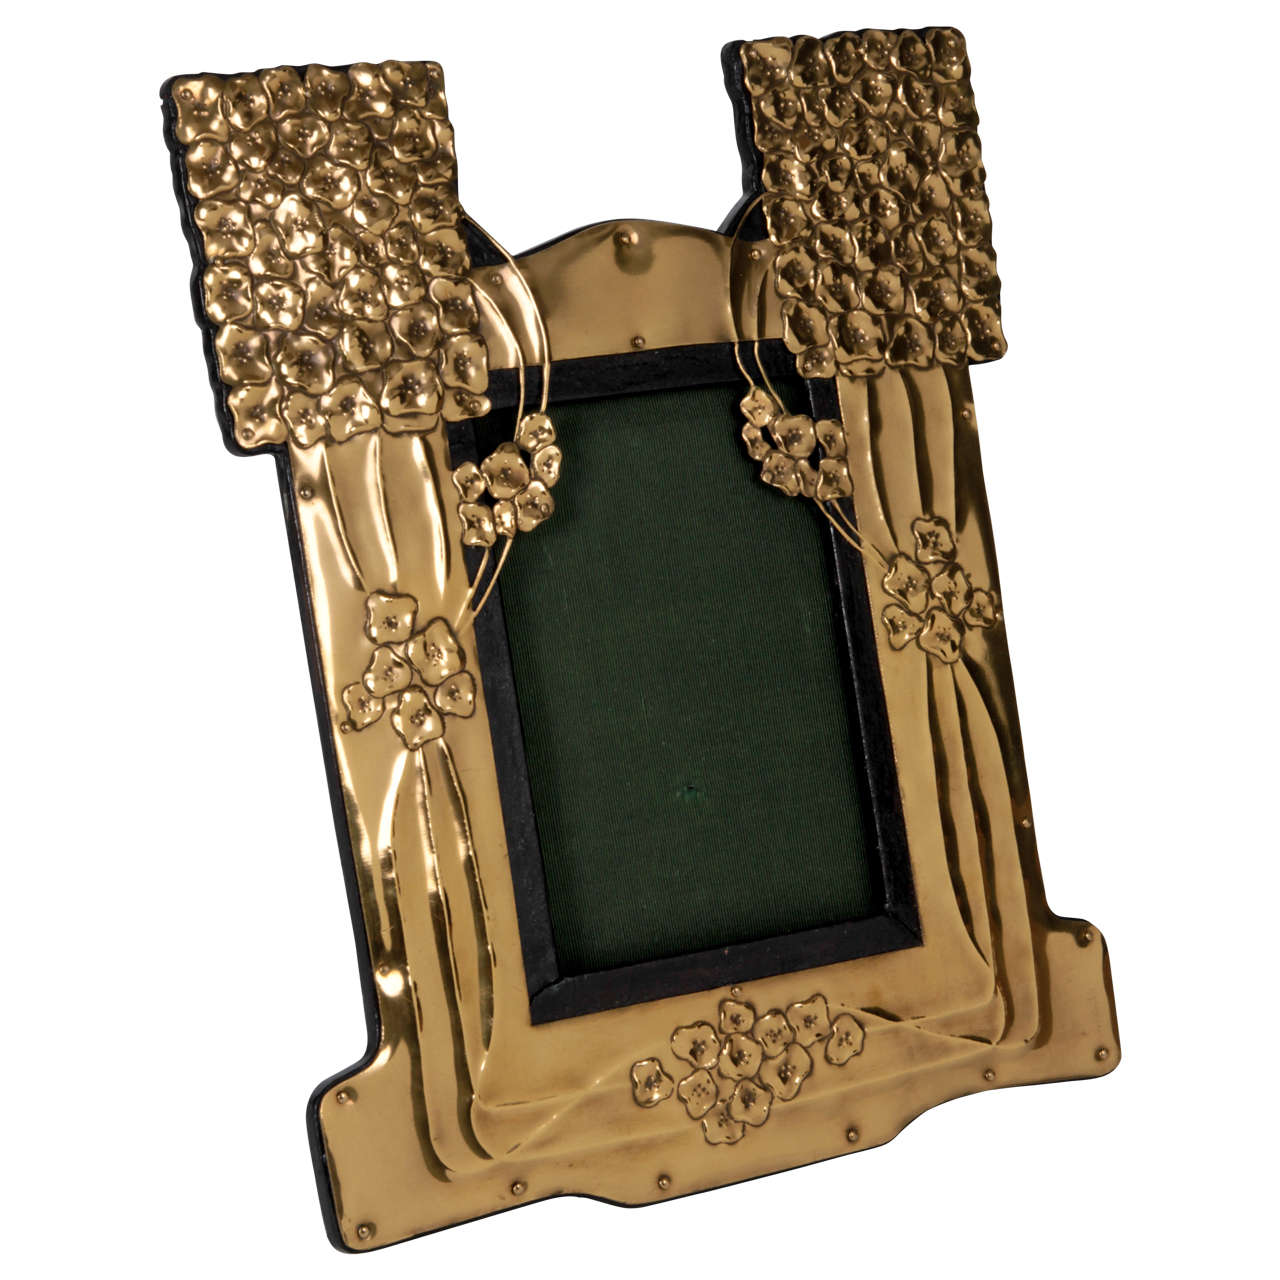 Vienna Secession Gilt Photo Frame C 1900 At 1stdibs